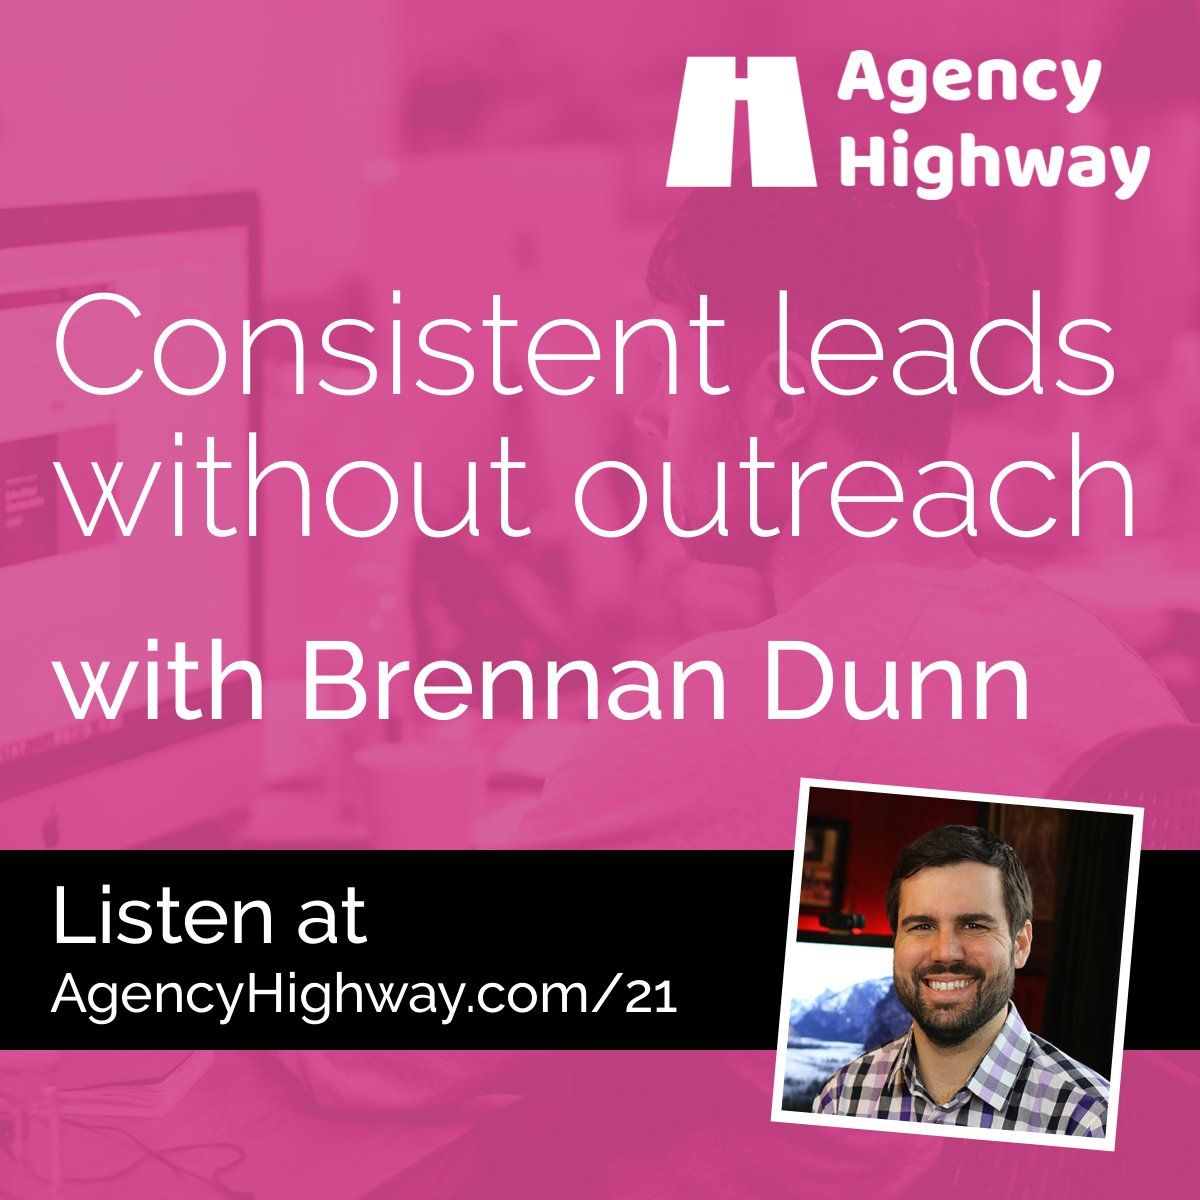 Getting consistent leads to your #webdesign business without outreach. In this interview Brennan Dunn shares the exact strategies he used to grow his agency to $2 million revenue in just 3 years!  https://buff.ly/2BVHsNS #creativeagency #digitalagencypic.twitter.com/Q9j0QvIfTu